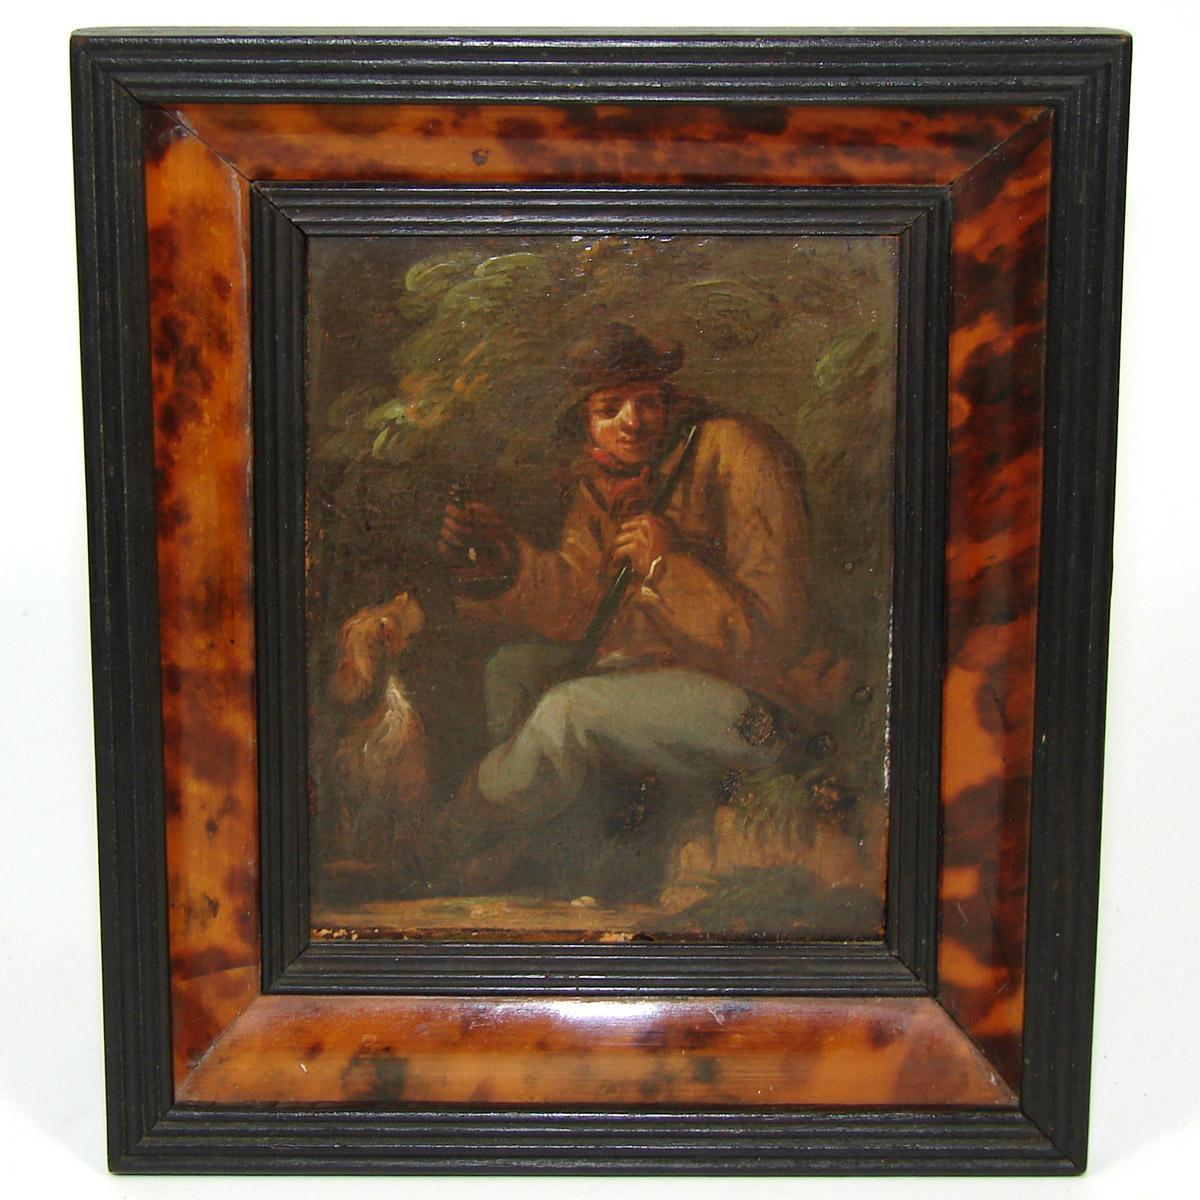 Fabulous Antique Early 1800s Flemish or Dutch Miniature Oil Painting, Hunter with Rifle & Dog